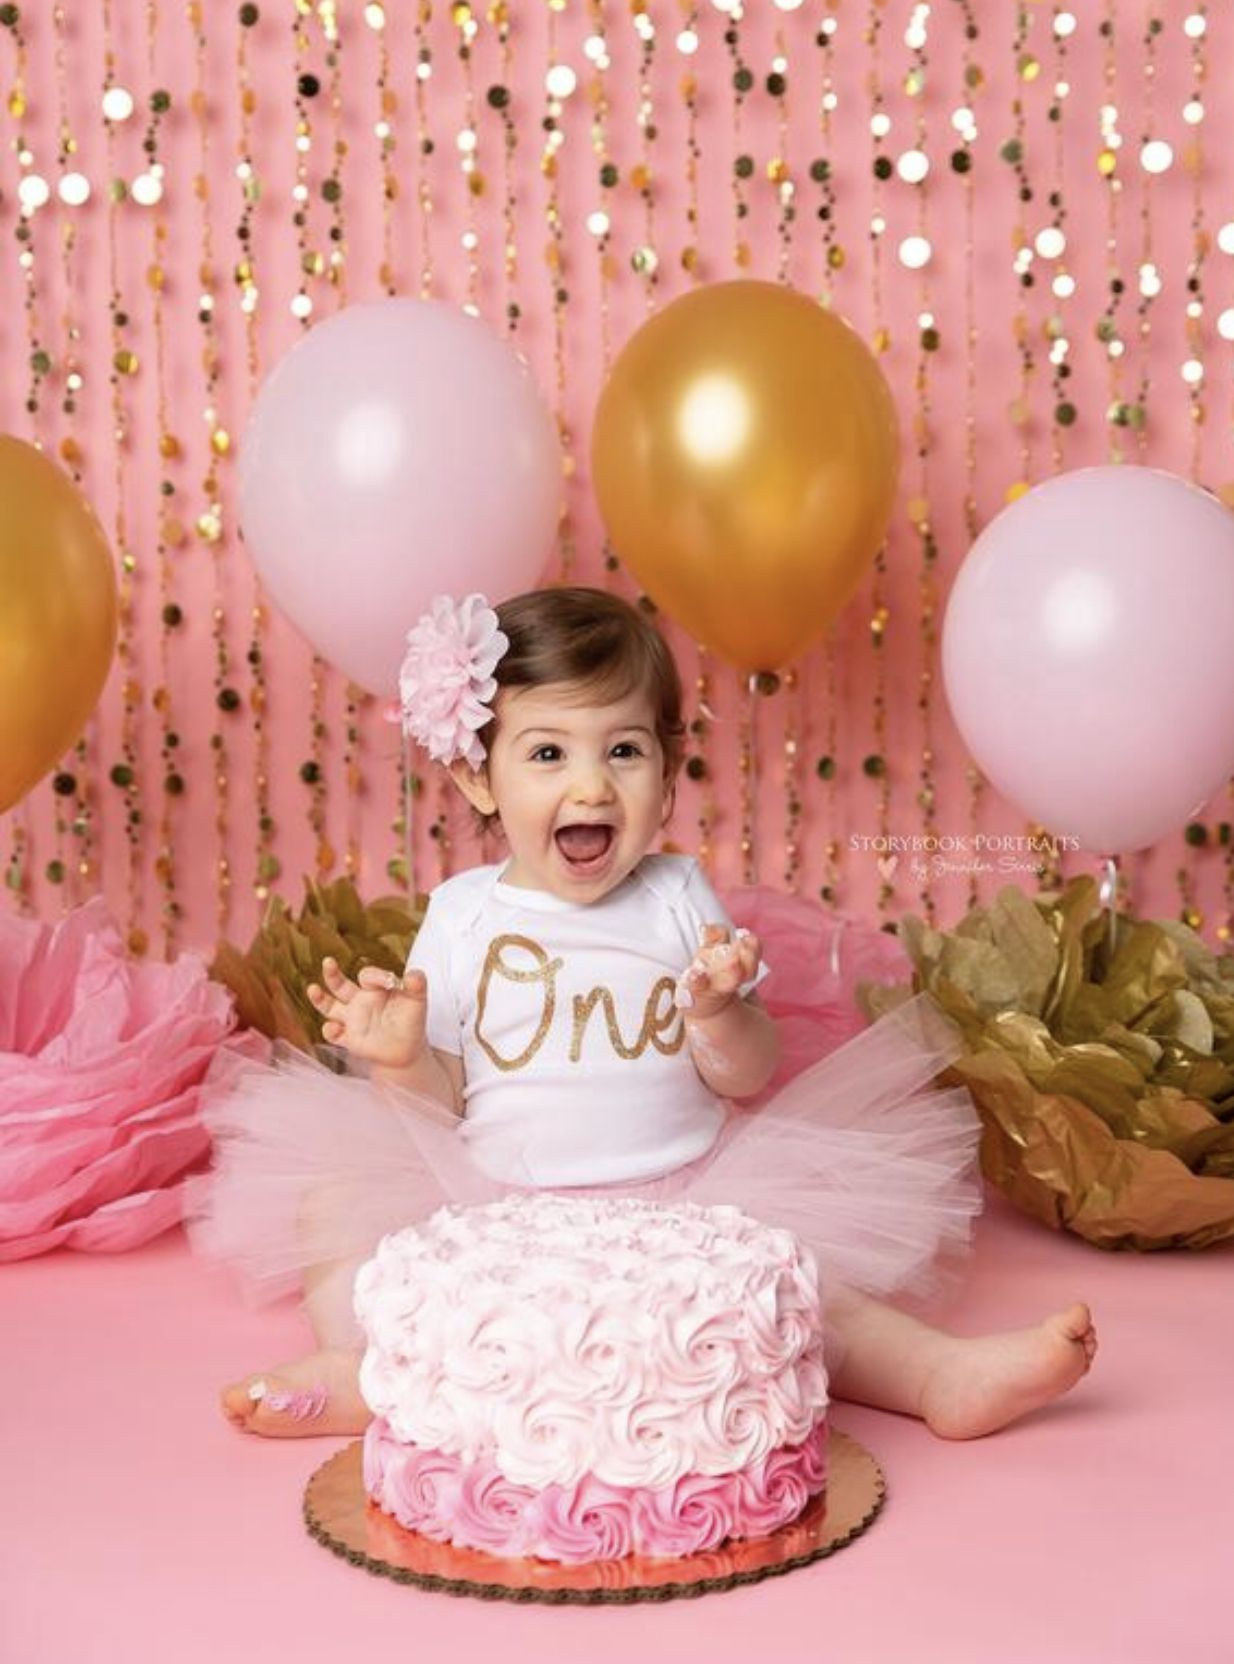 Happy to be one! in 2020 Birthday girl pictures, Cake